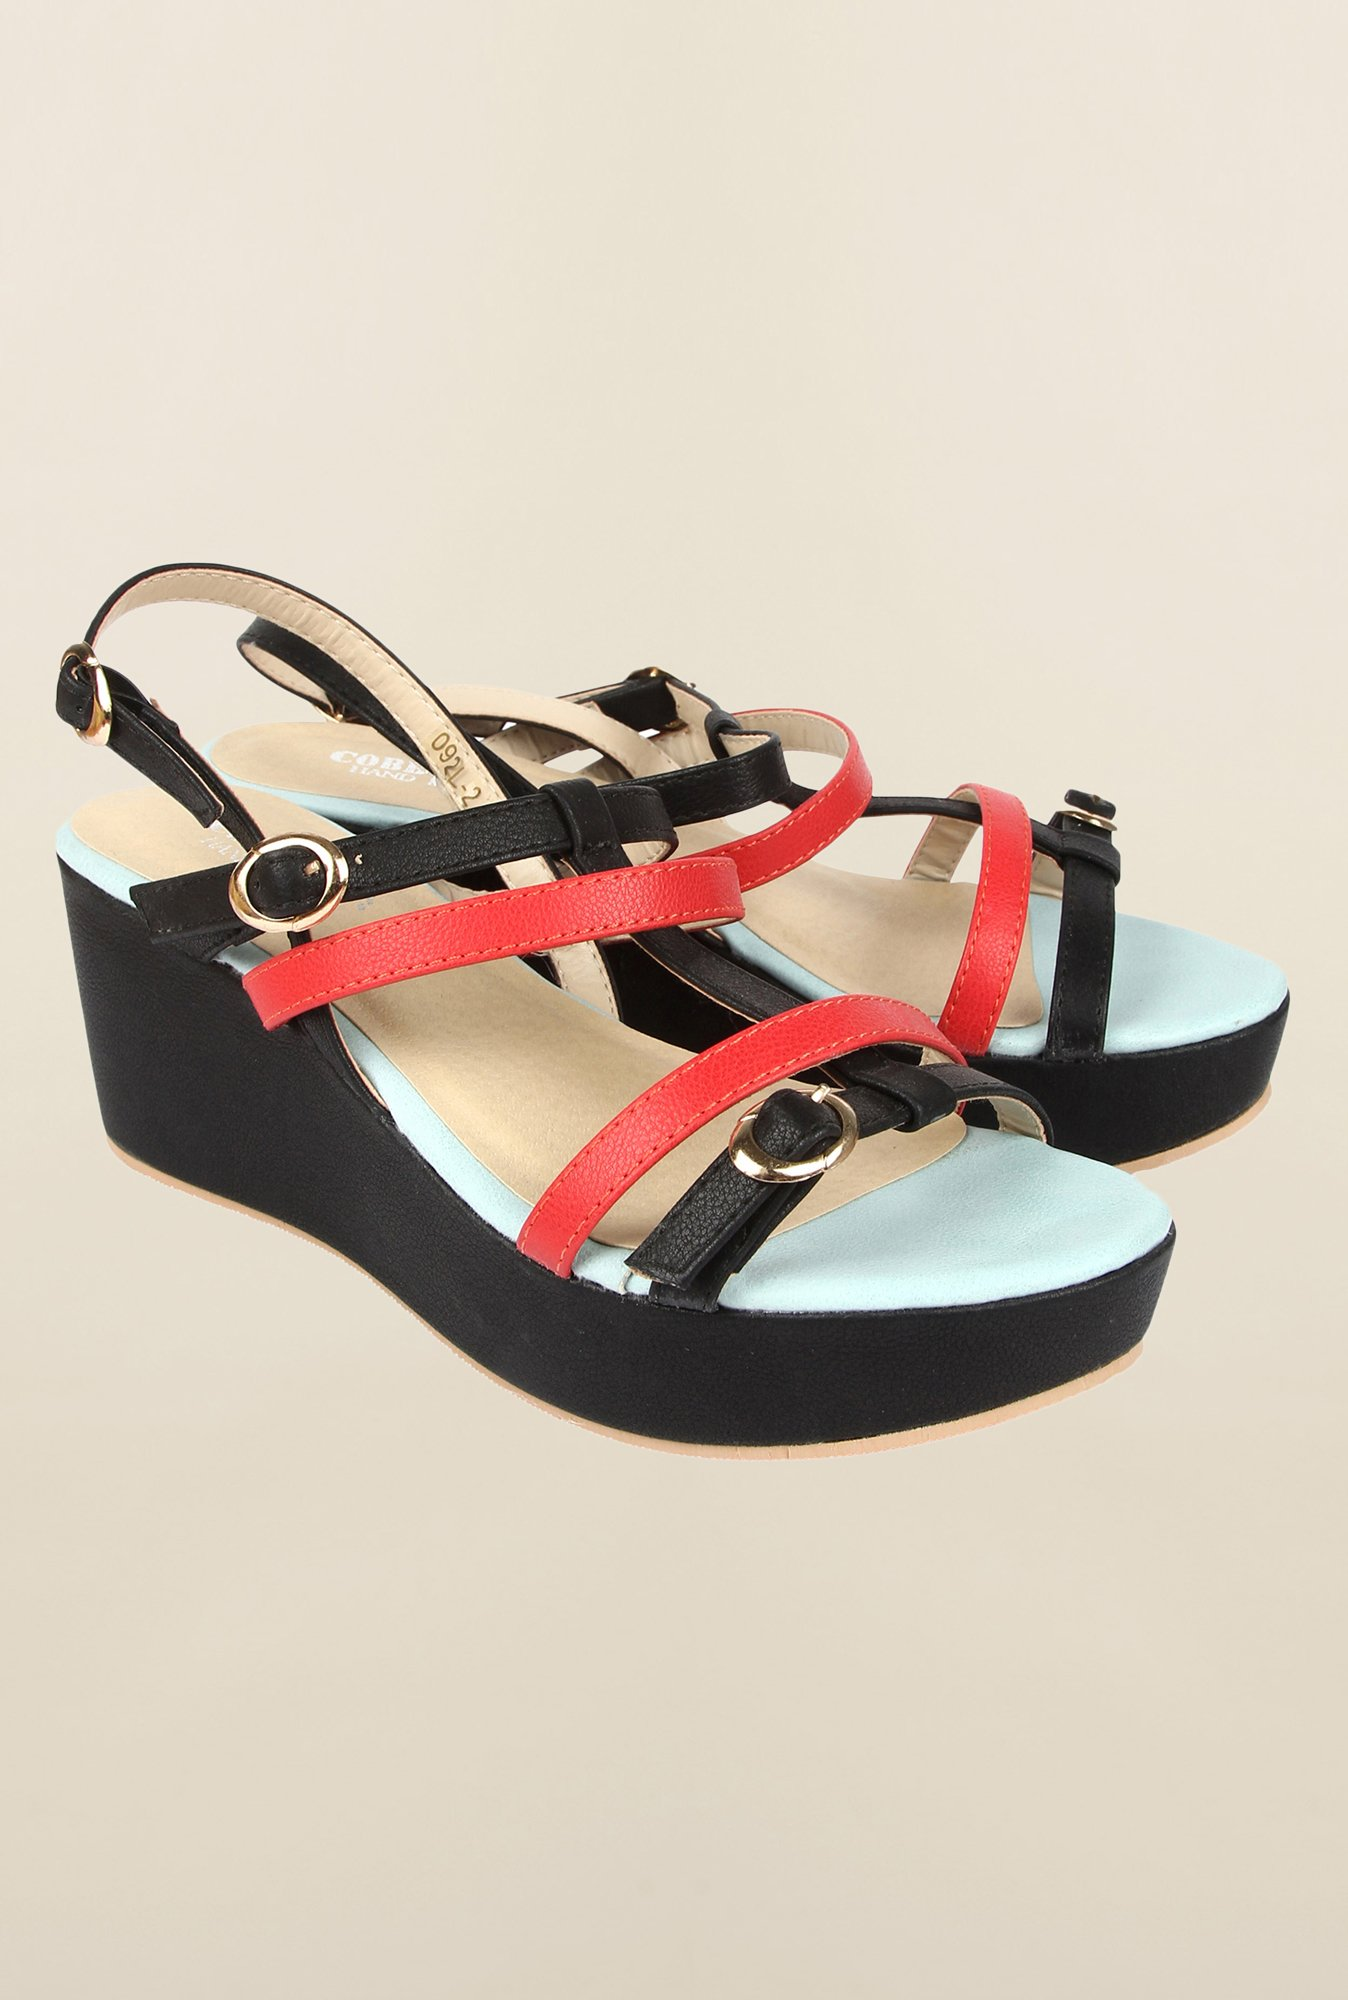 Cobblerz Black & Red Wedge Sandals